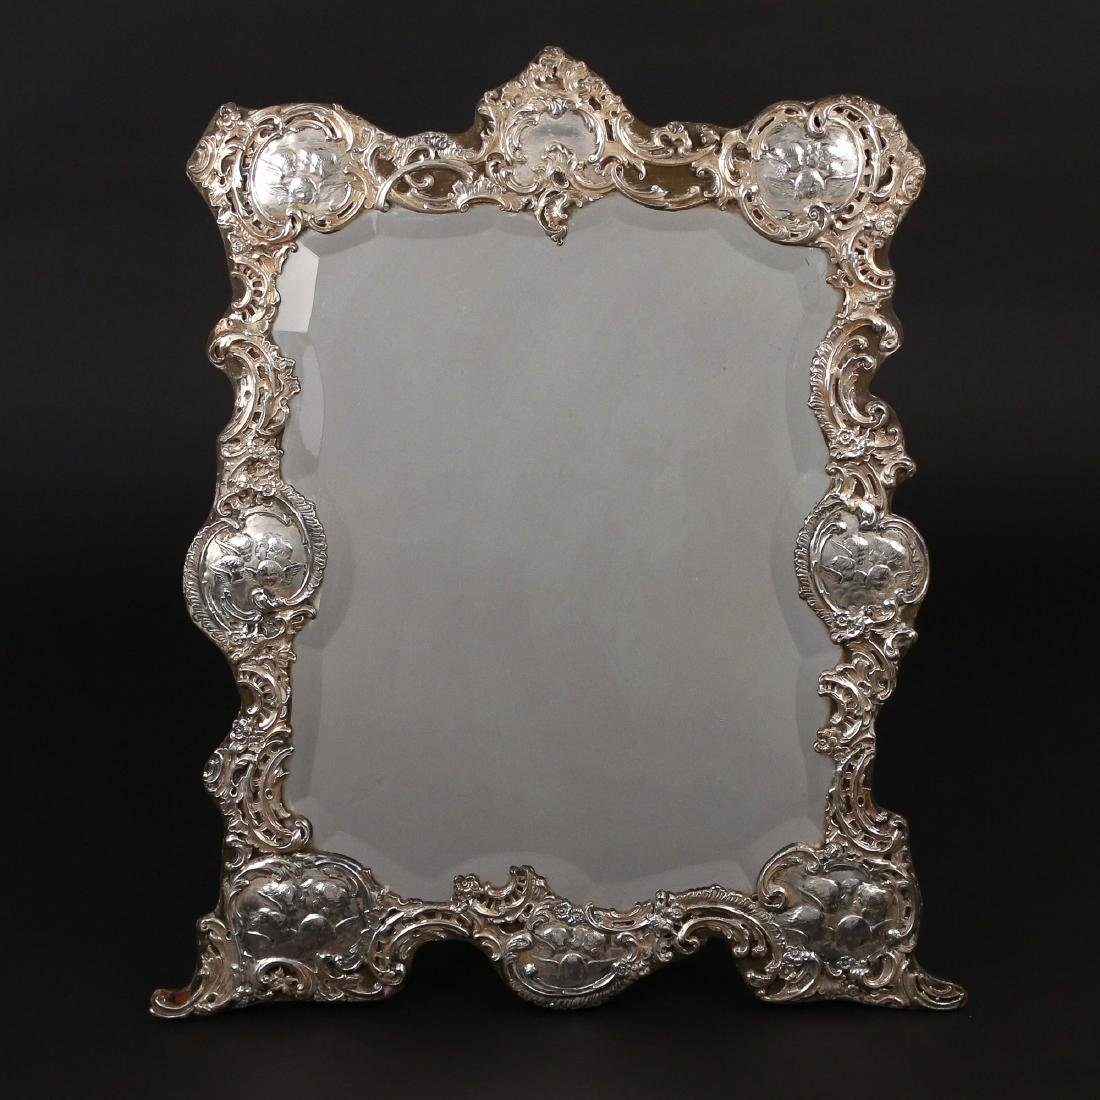 LARGE SILVER-OVERLAID EASEL-BACK MIRROR